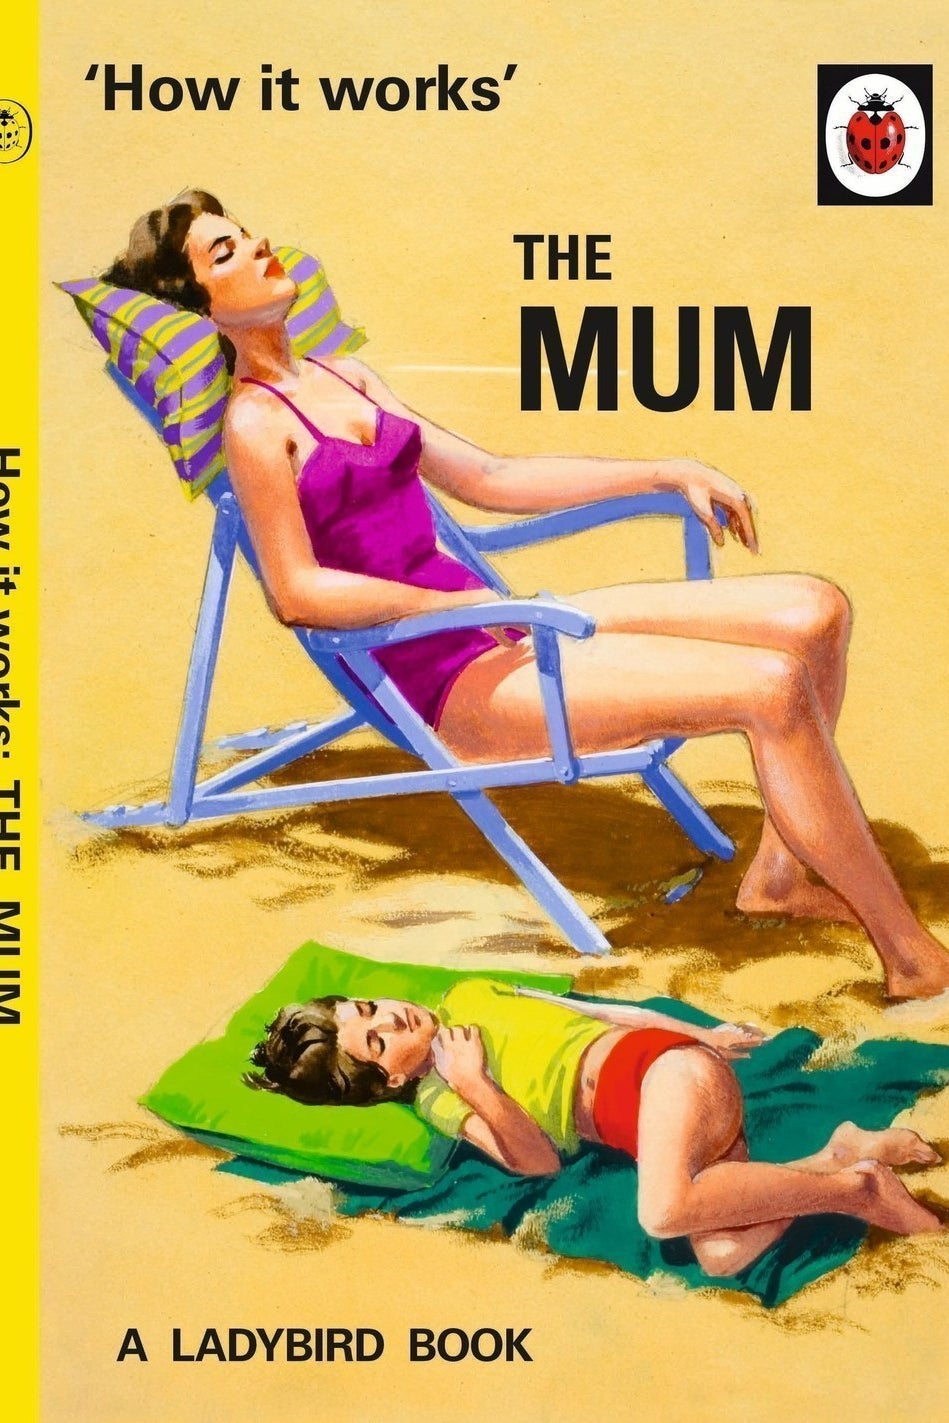 Spoof Ladybird books were big sellers at Christmas.